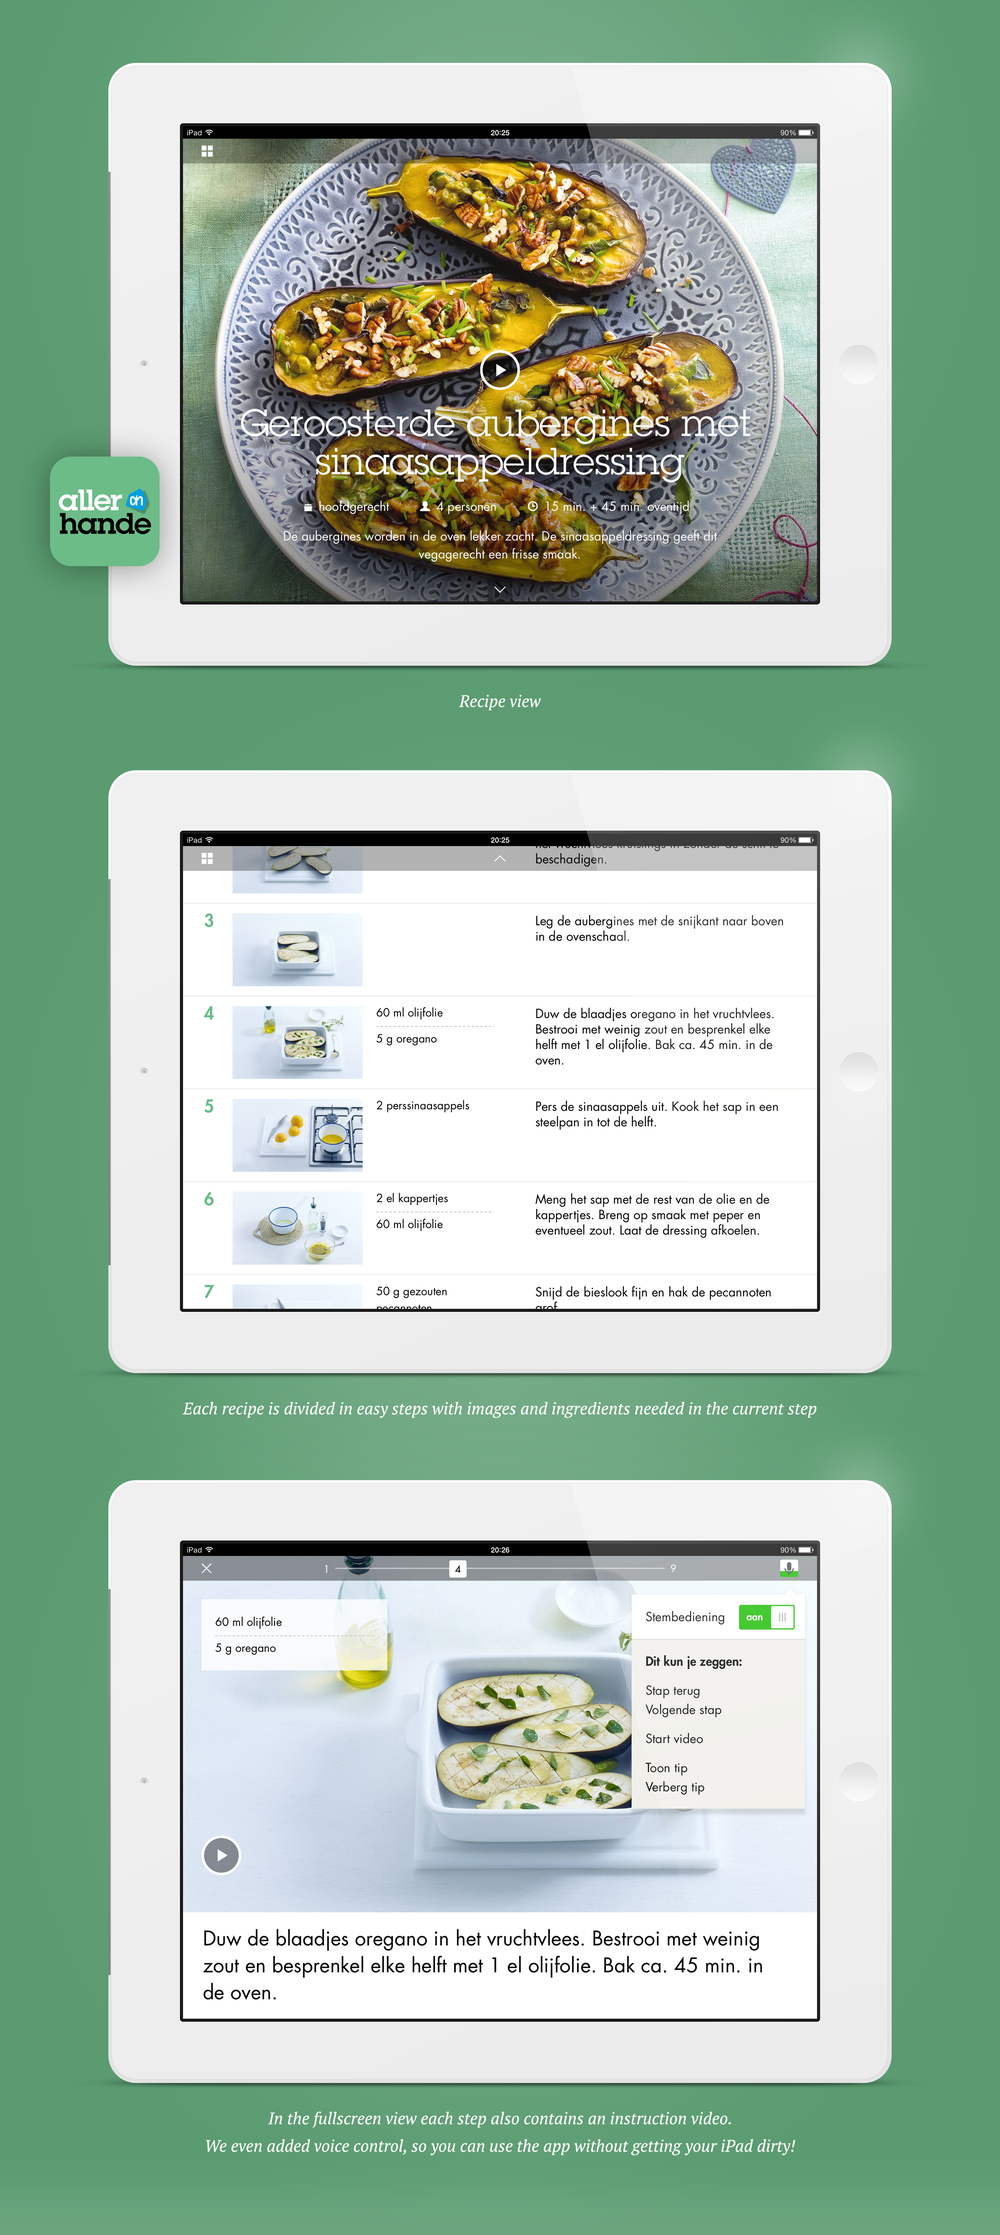 Allerhande Cooking app for iPad - Portfolio of Sanne Wijbenga